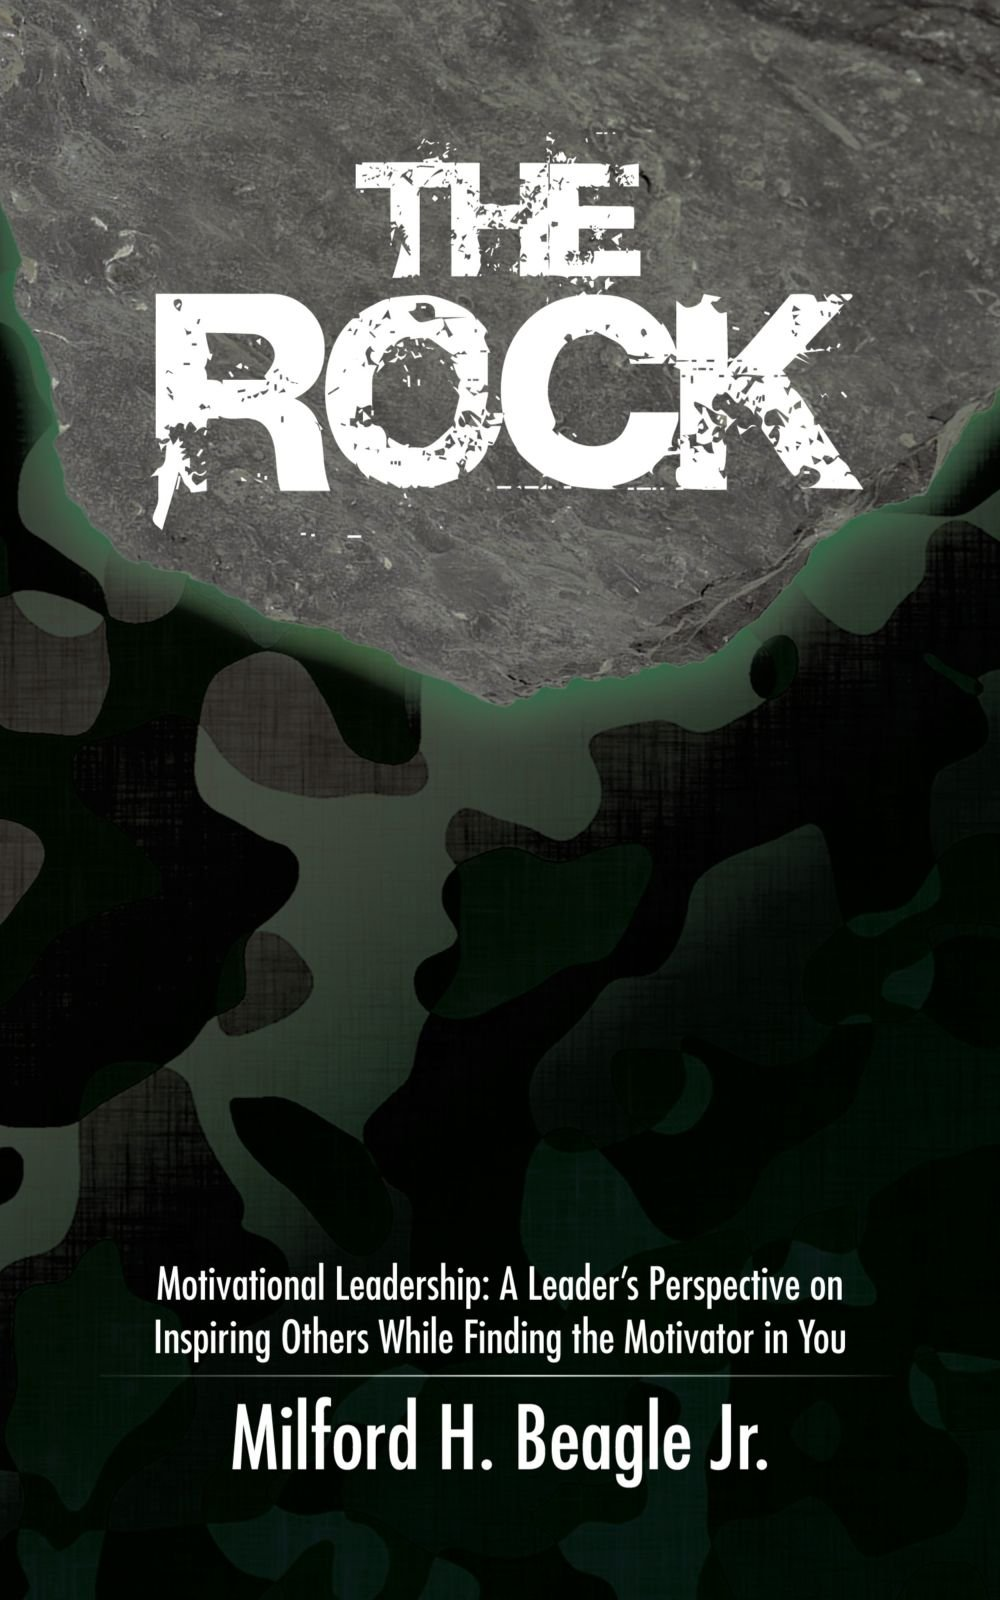 Read Online The Rock: Motivational Leadership: A Leader's Perspective On Inspiring Others While Finding the Motivator in You PDF